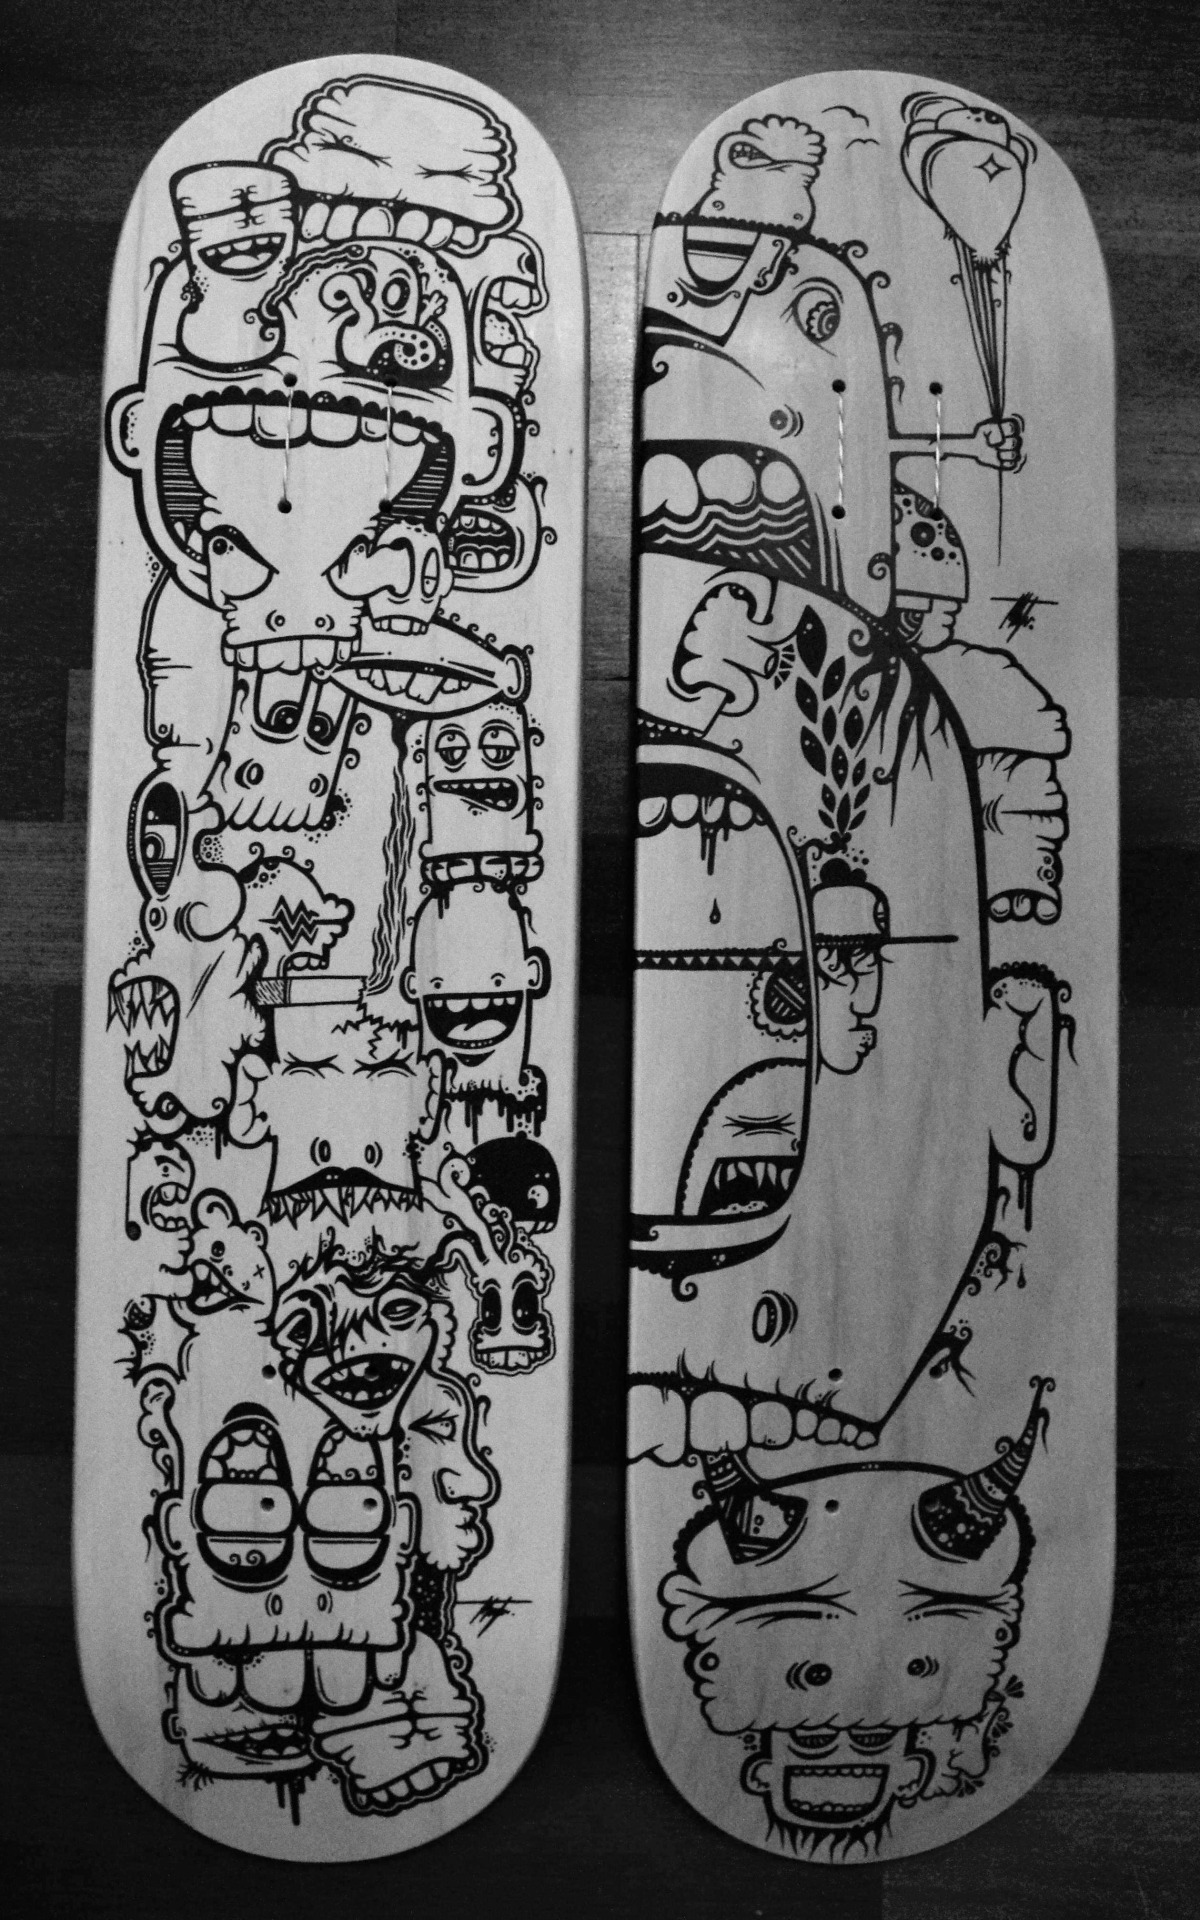 Skateboard decks designed by matthewtaylorillustration